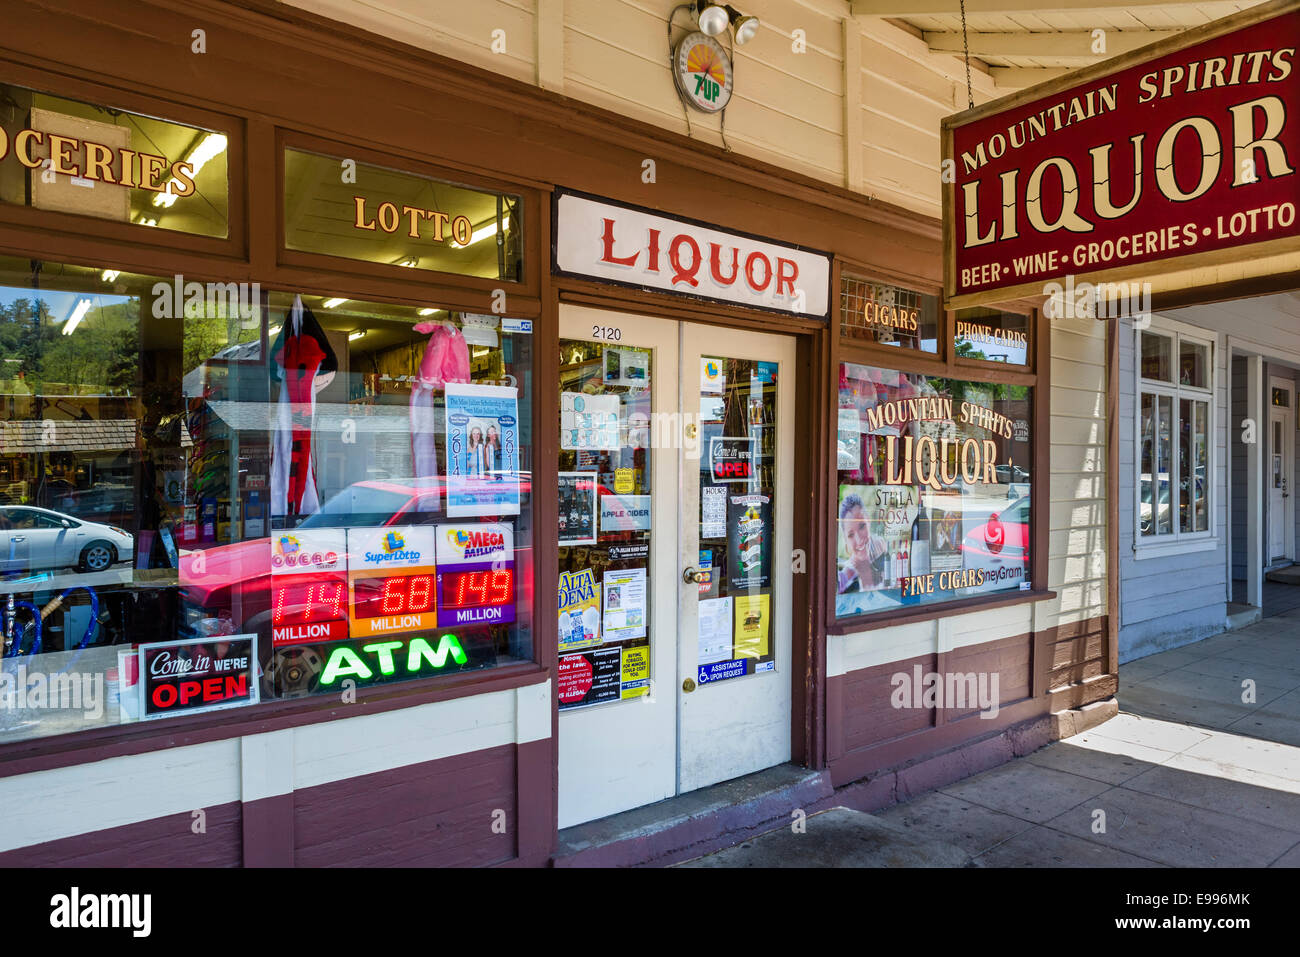 Traditional liquor store on Main Street in the historic old town of Julian, San Diego County, California, USA - Stock Image